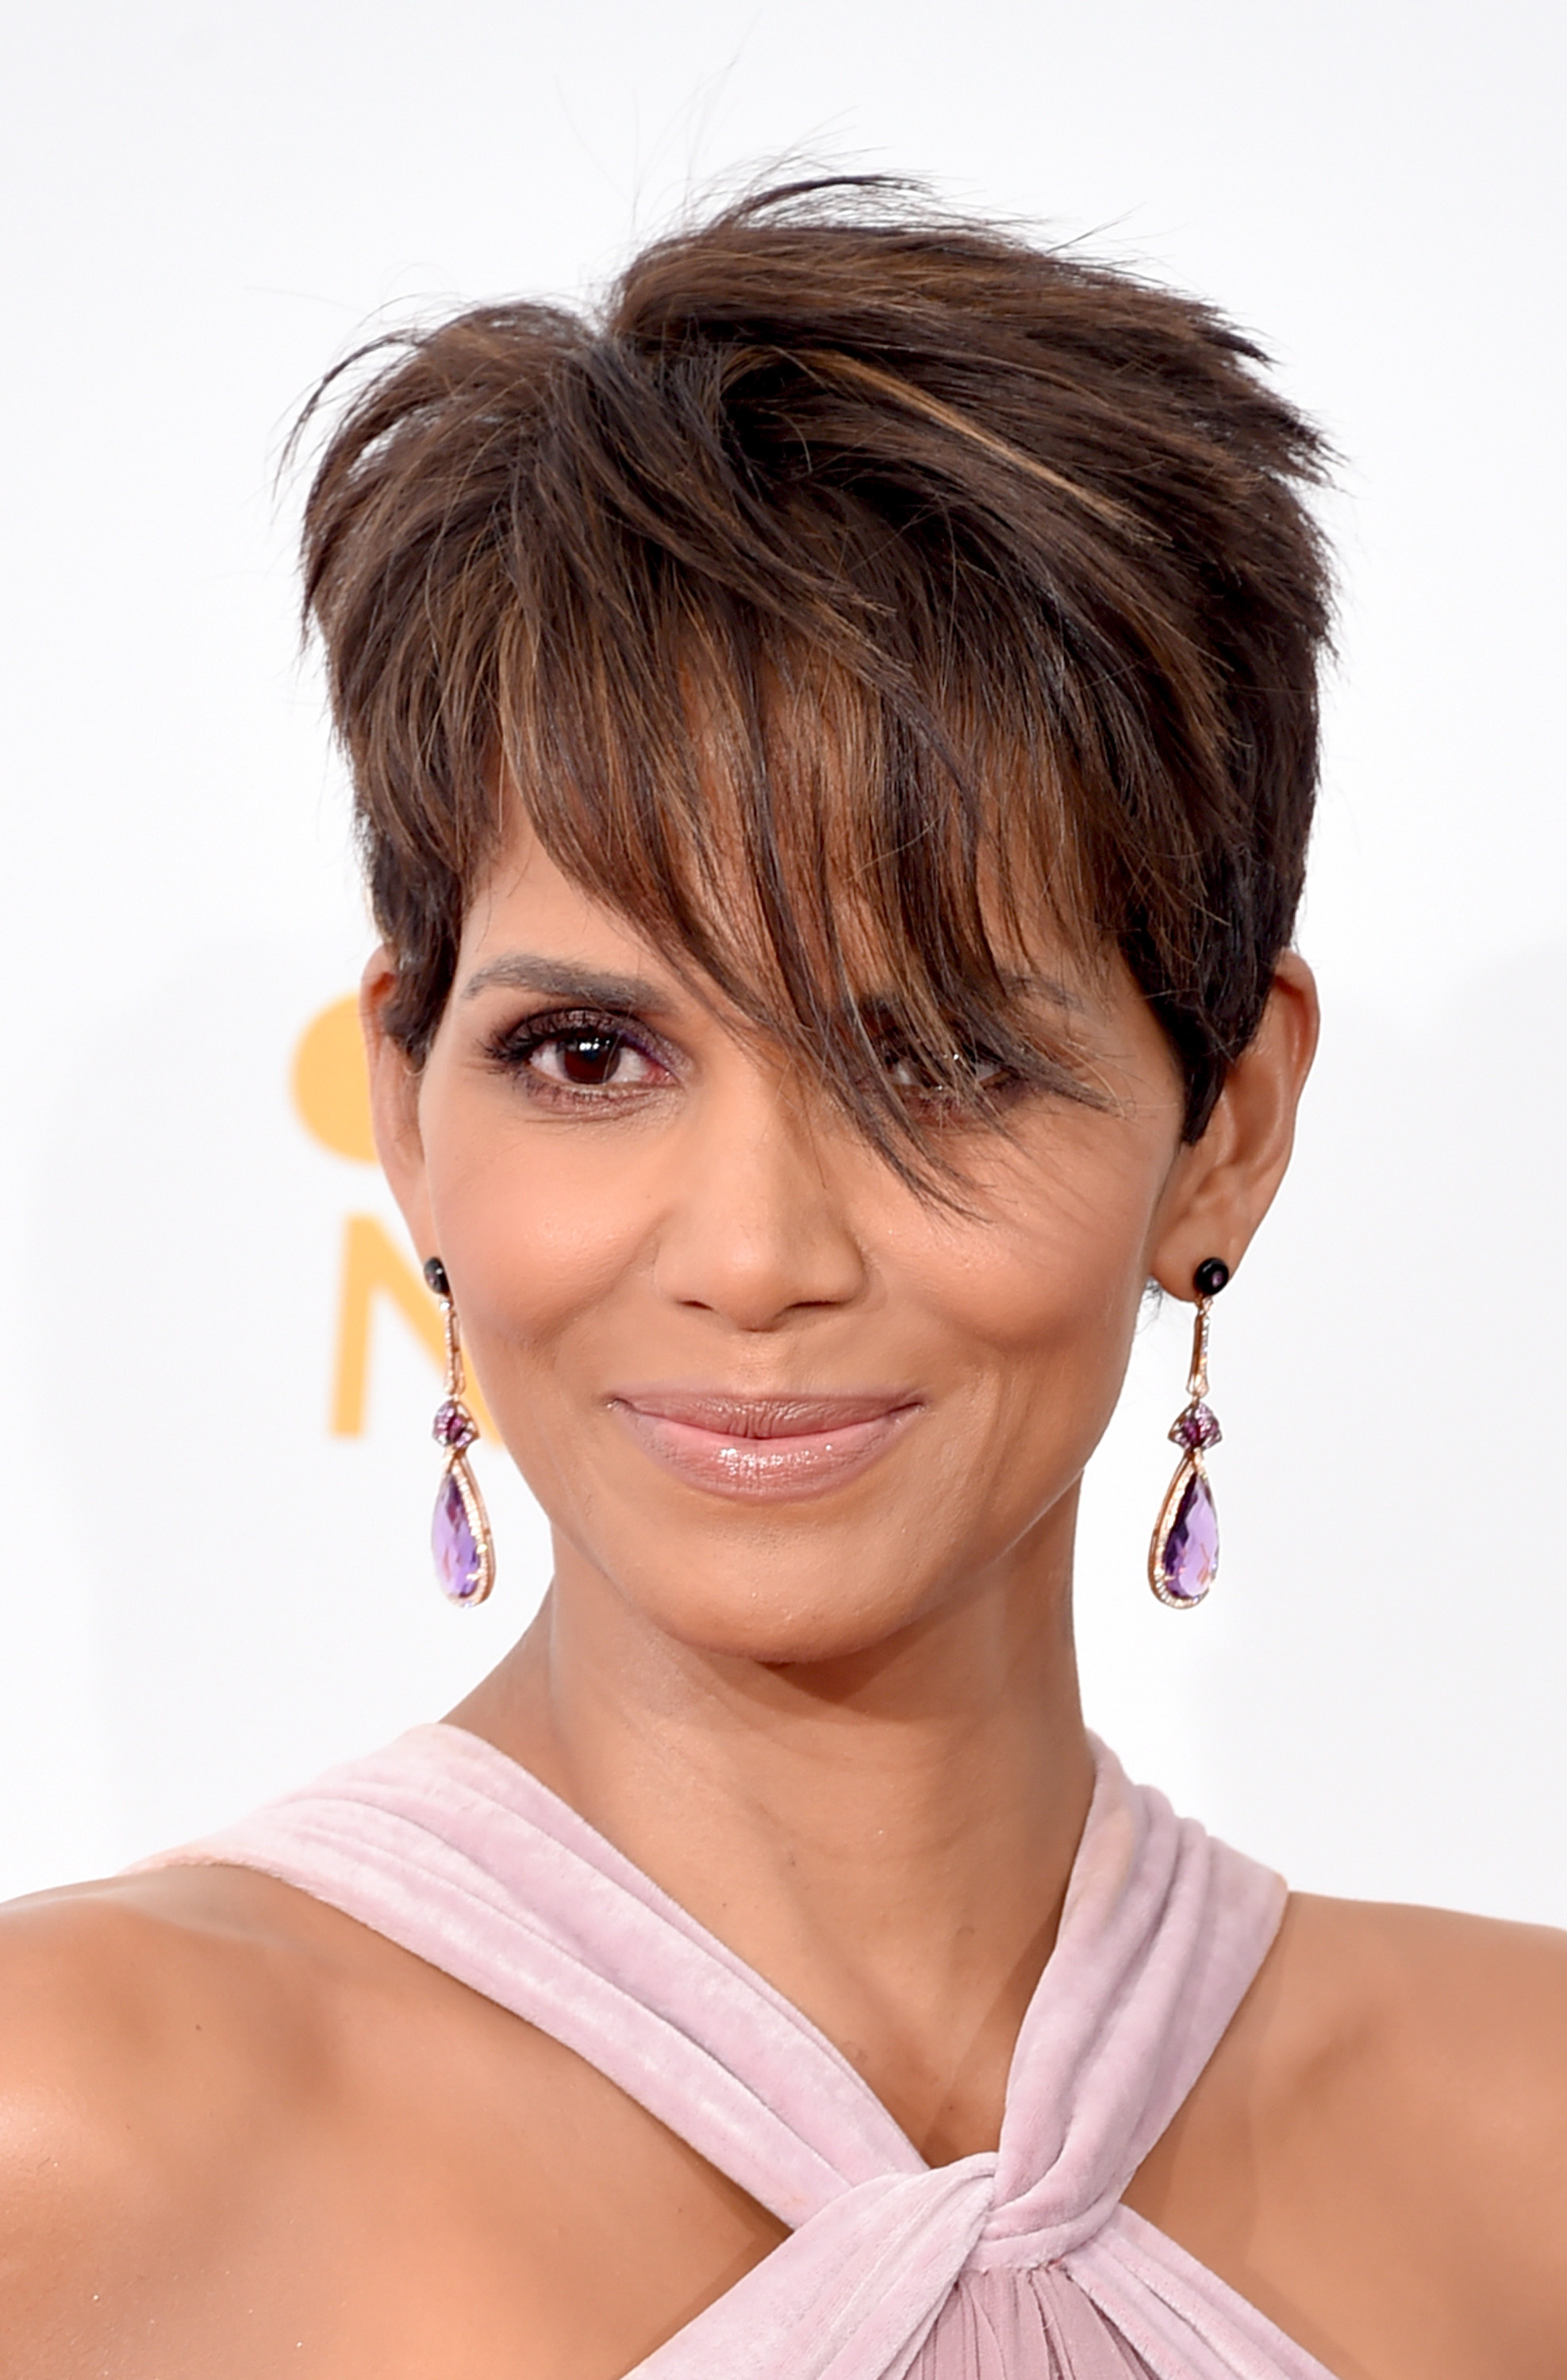 Groovy 34 Pixie Hairstyles And Cuts Celebrities With Pixies Short Hairstyles Gunalazisus